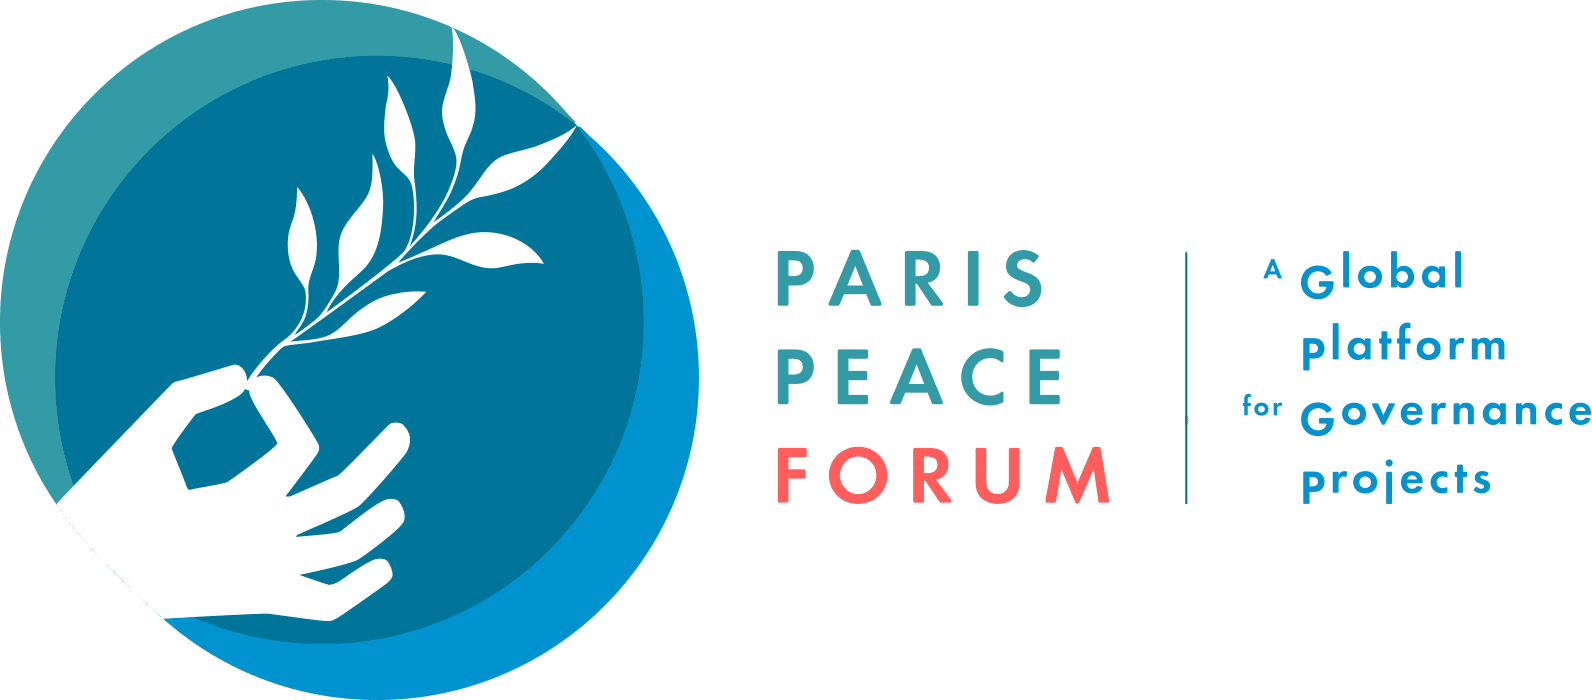 Call for Projects 2020 by Paris Peace Forum [Nov 11-12]: Submit by May 12